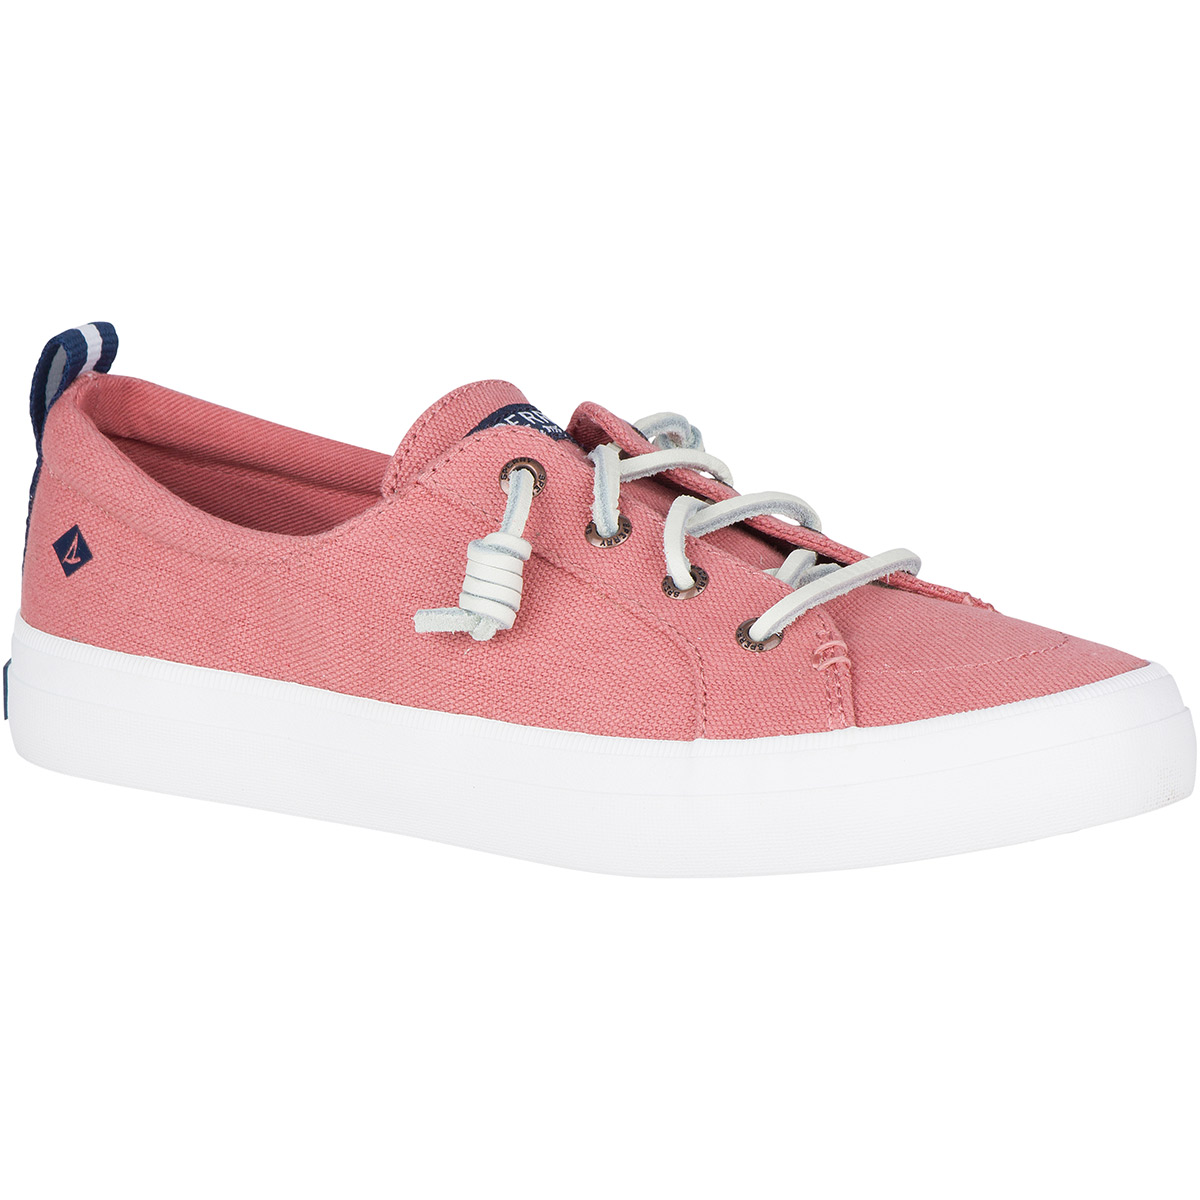 Sperry Women's Crest Vibe Sneakers - Red, 8